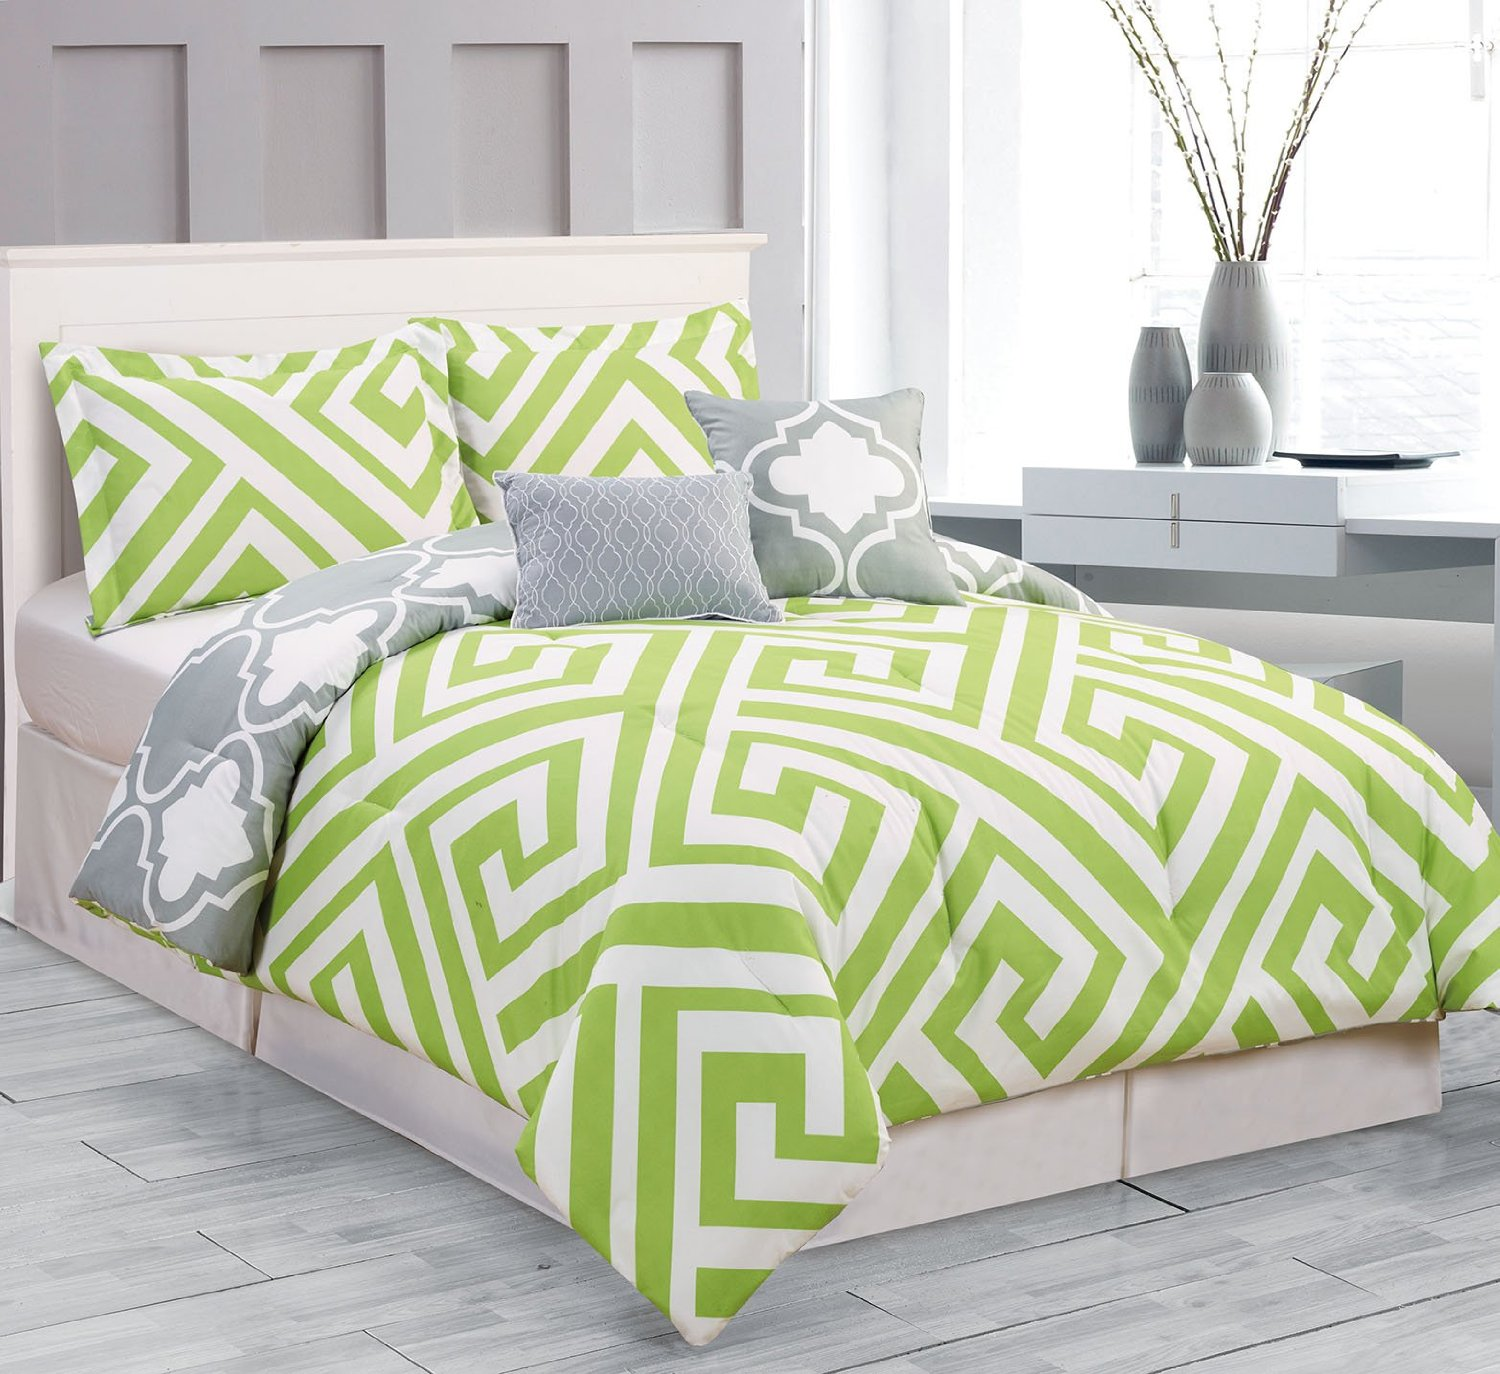 Bon King Size Lime Green And Grey/Gray Comforter Bedding Set